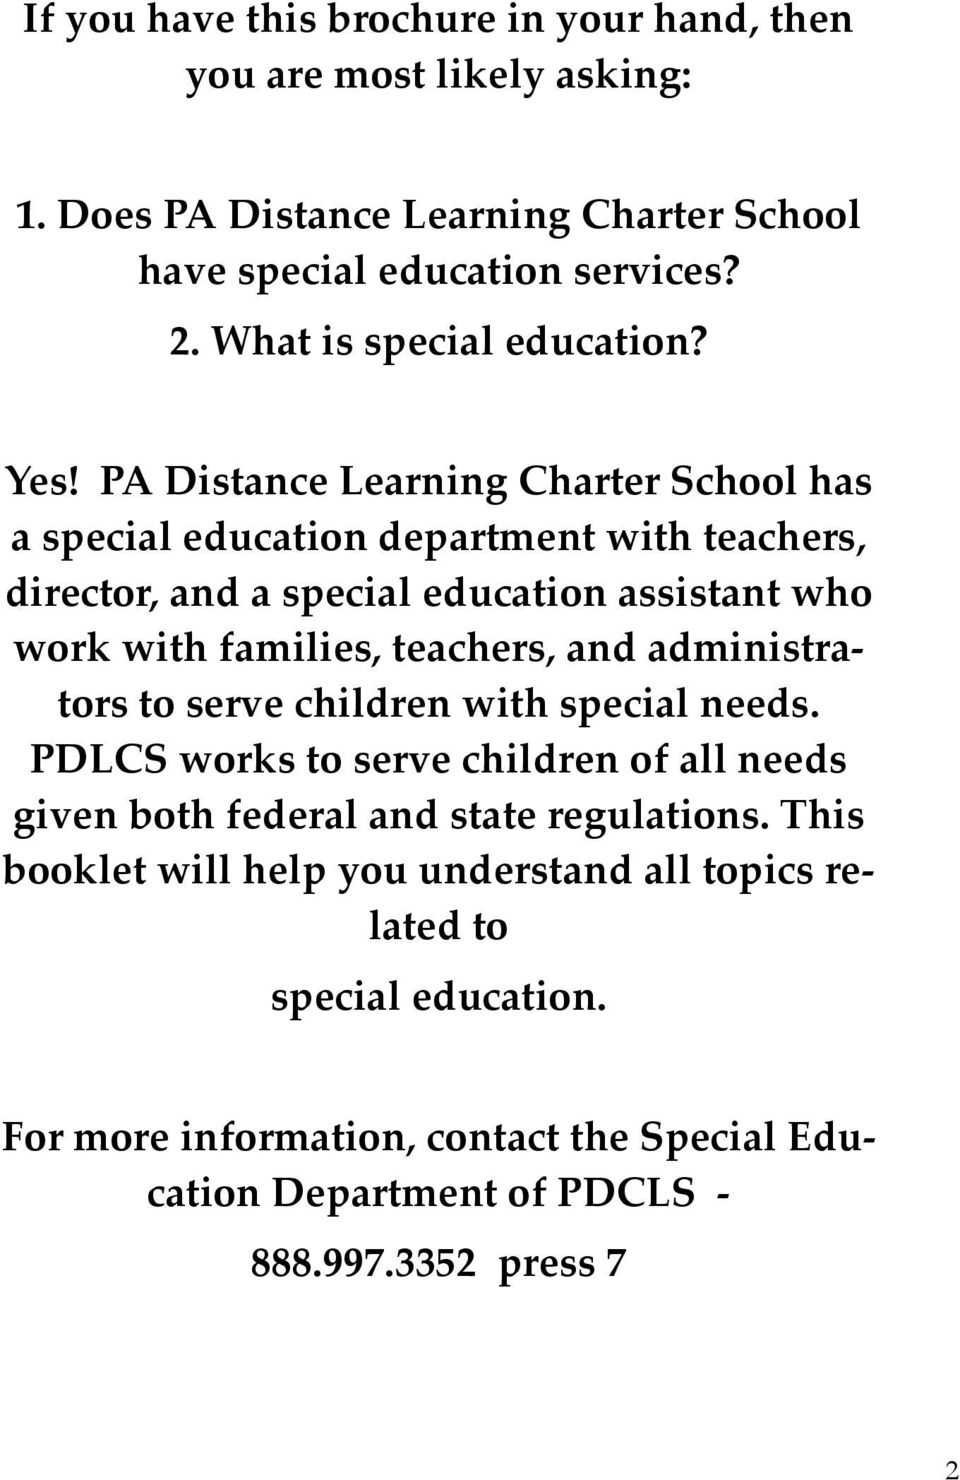 PA Distance Learning Charter School has a special education department with teachers, director, and a special education assistant who work with families, teachers,